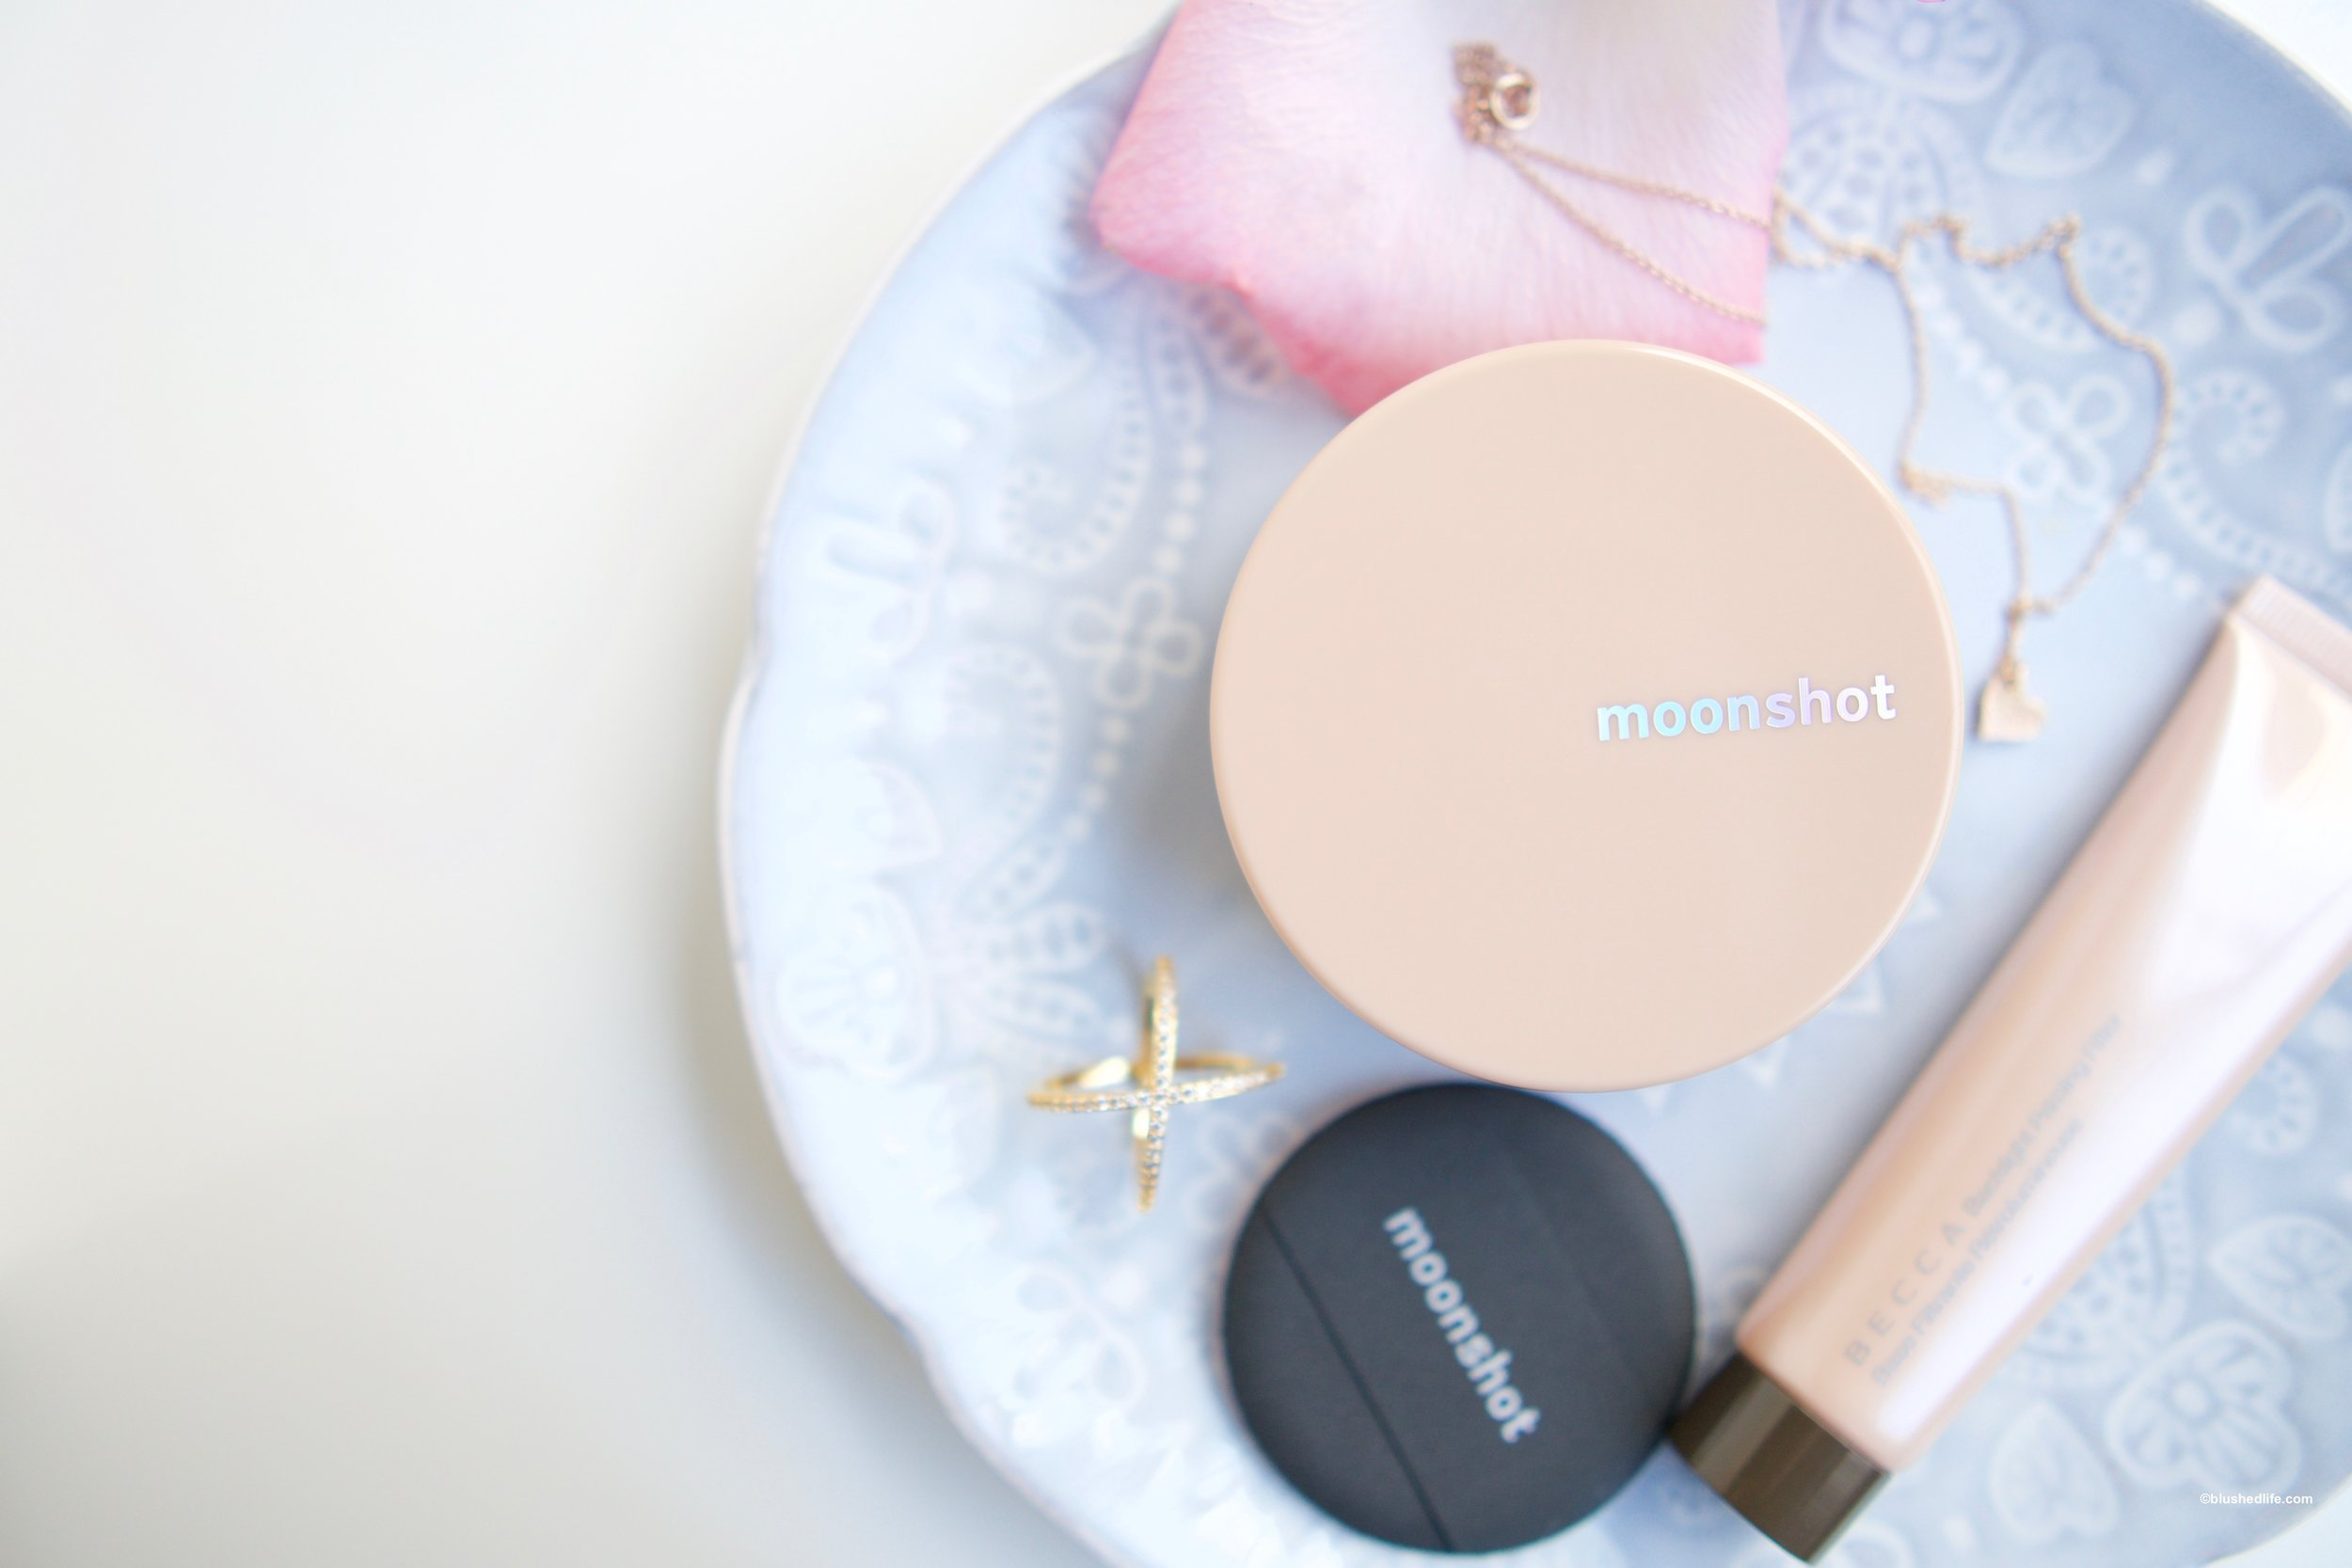 Moonshot Cushion On Textured Skin | Review_DSC06909.jpg